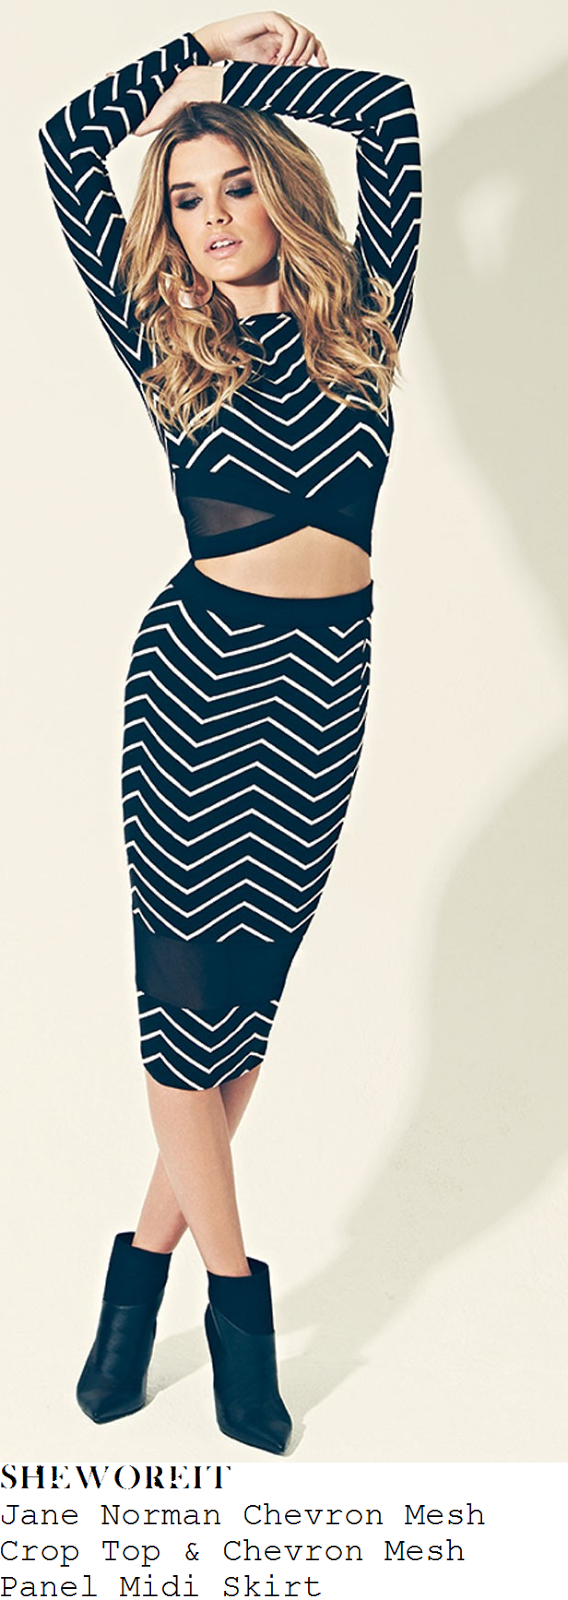 georgia-may-foote-black-and-white-zig-zag-print-chevron-long-sleeve-mesh-panel-crop-top-and-high-waisted-midi-skirt-dublin